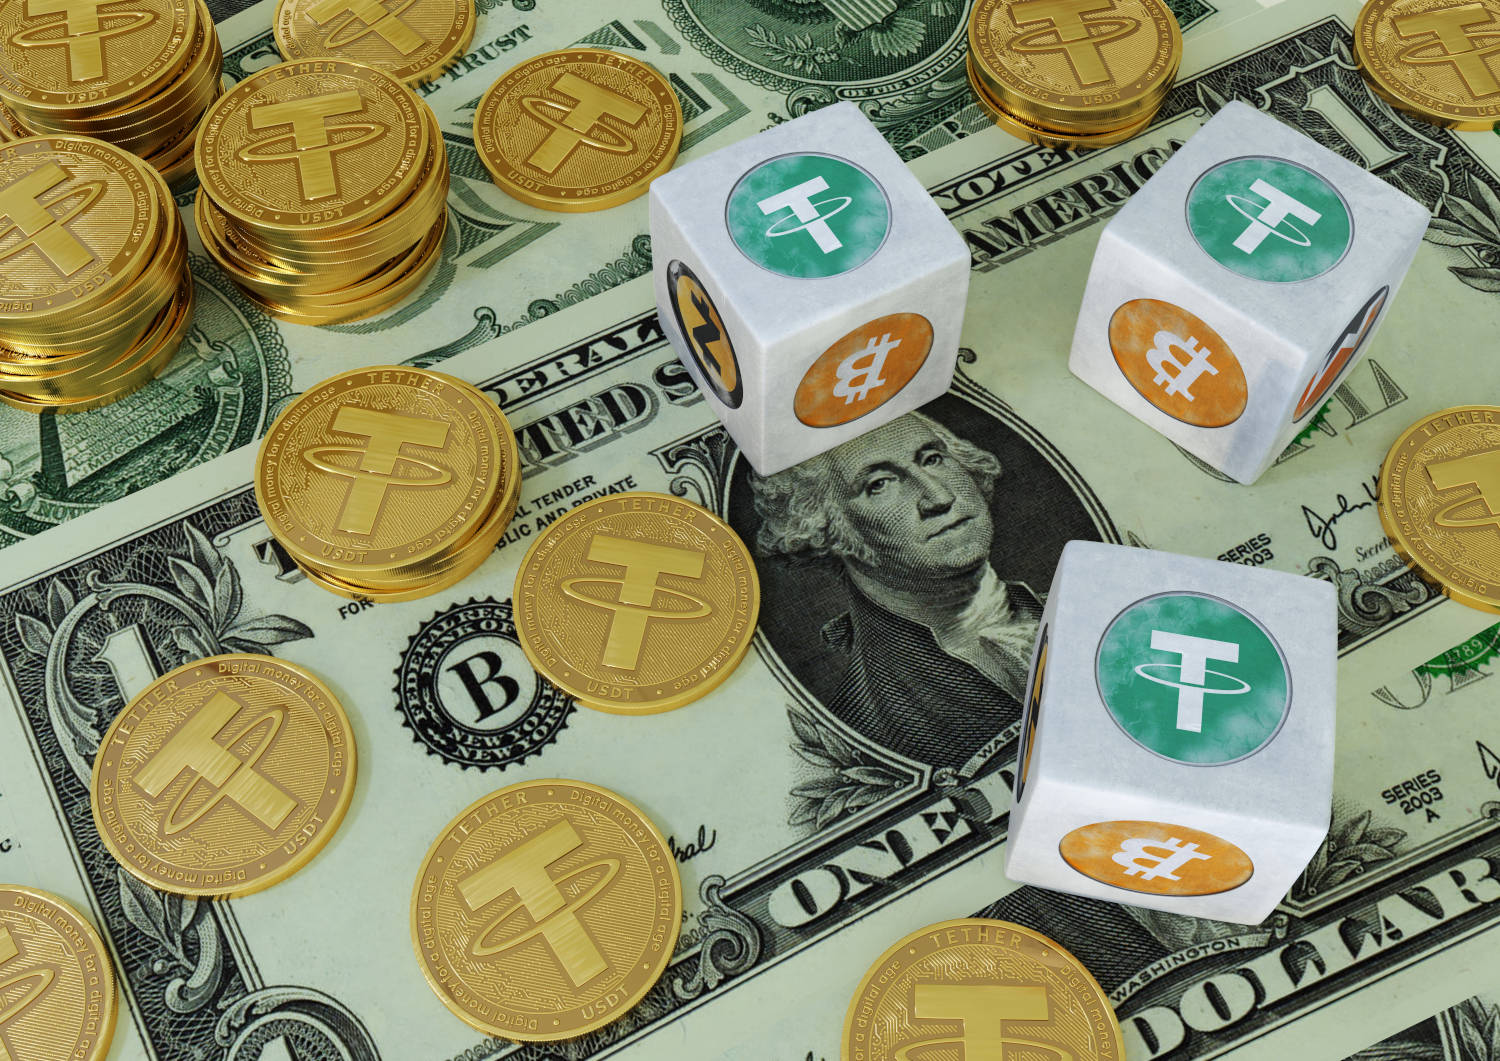 Tether coins and dices on dollar bills